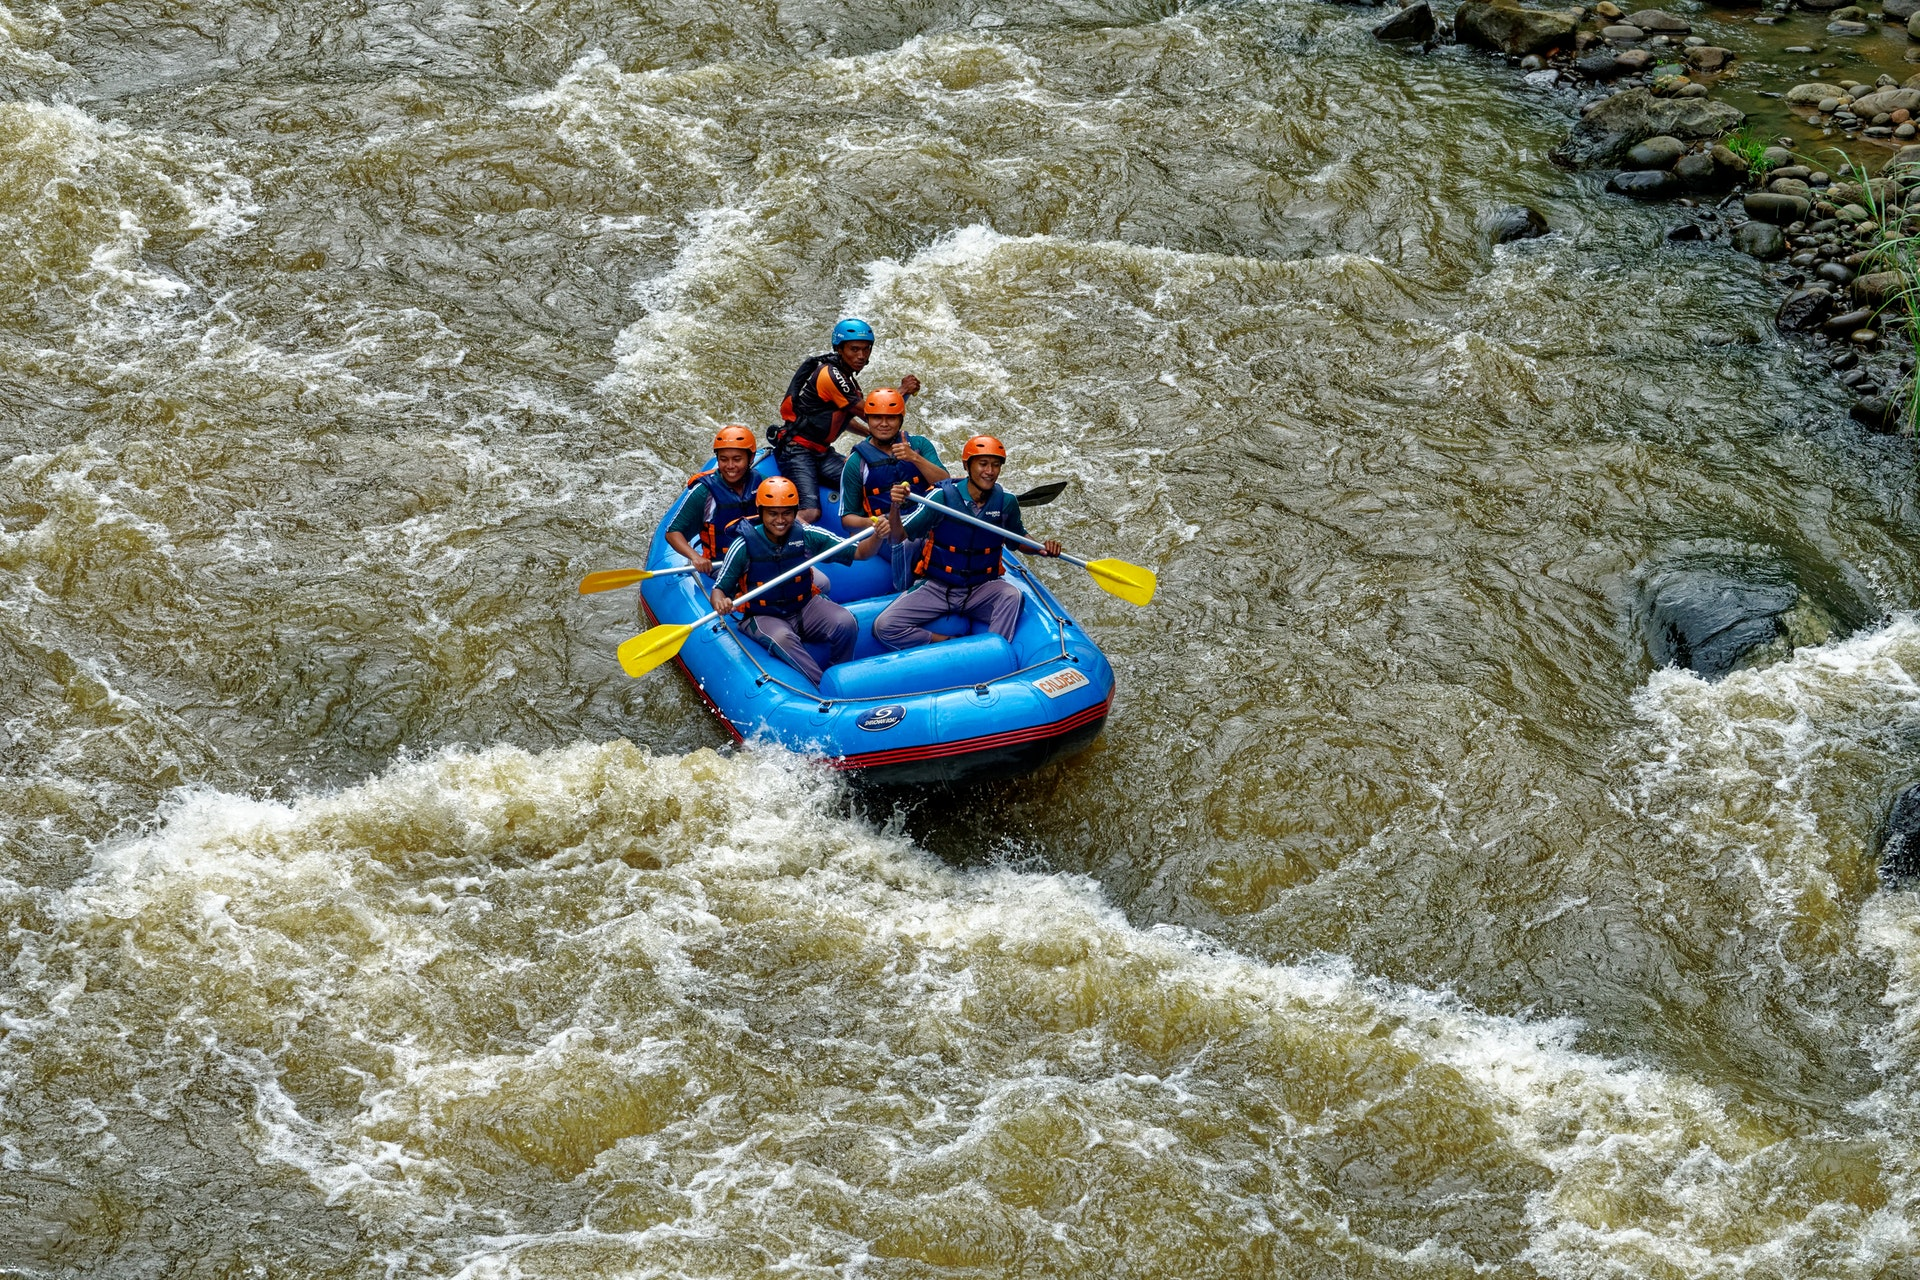 people-riding-on-inflatable-boat-1732278